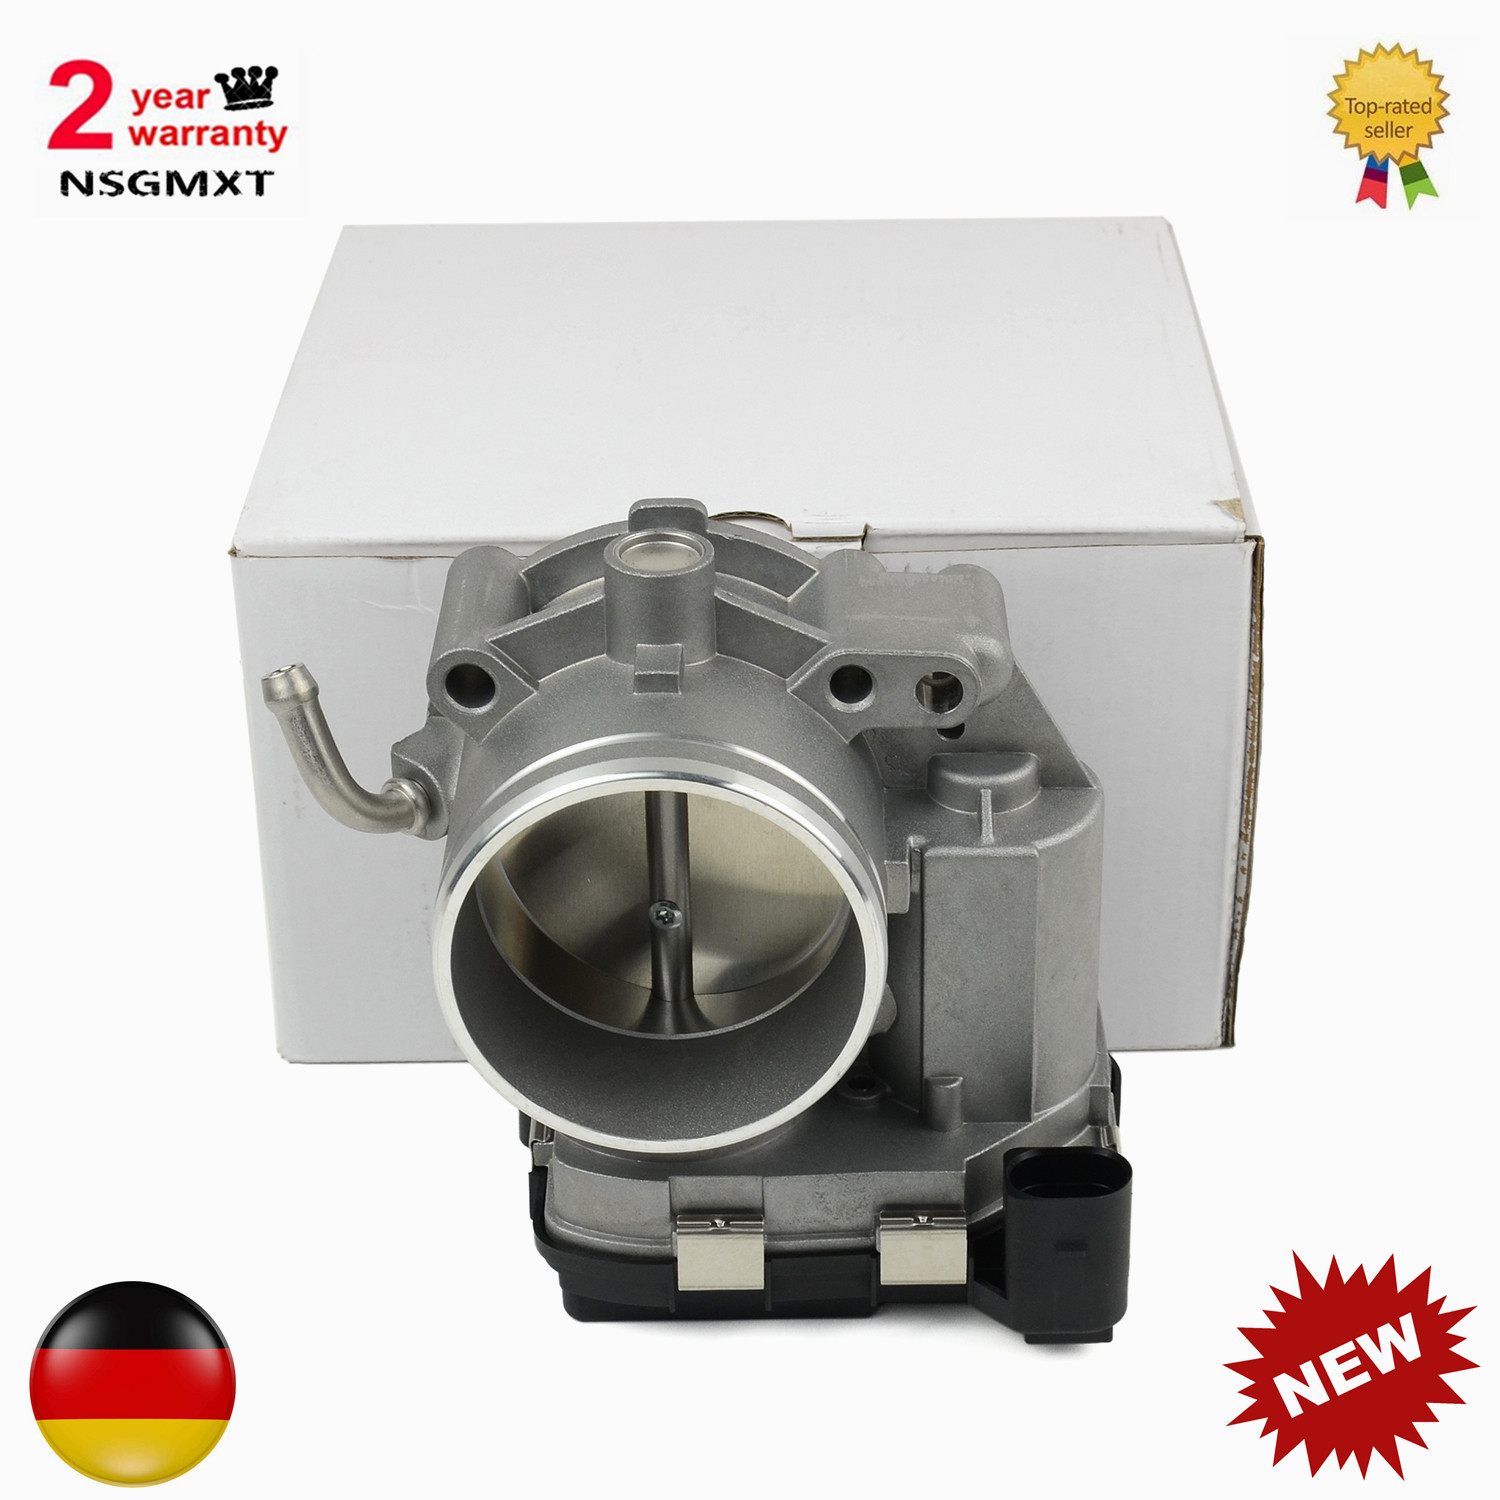 AP01 Brand New 07K133062A Throttle Body For VW Jetta Beetle Golf Passat 2.5L 2008-2014 07K 133 062 A